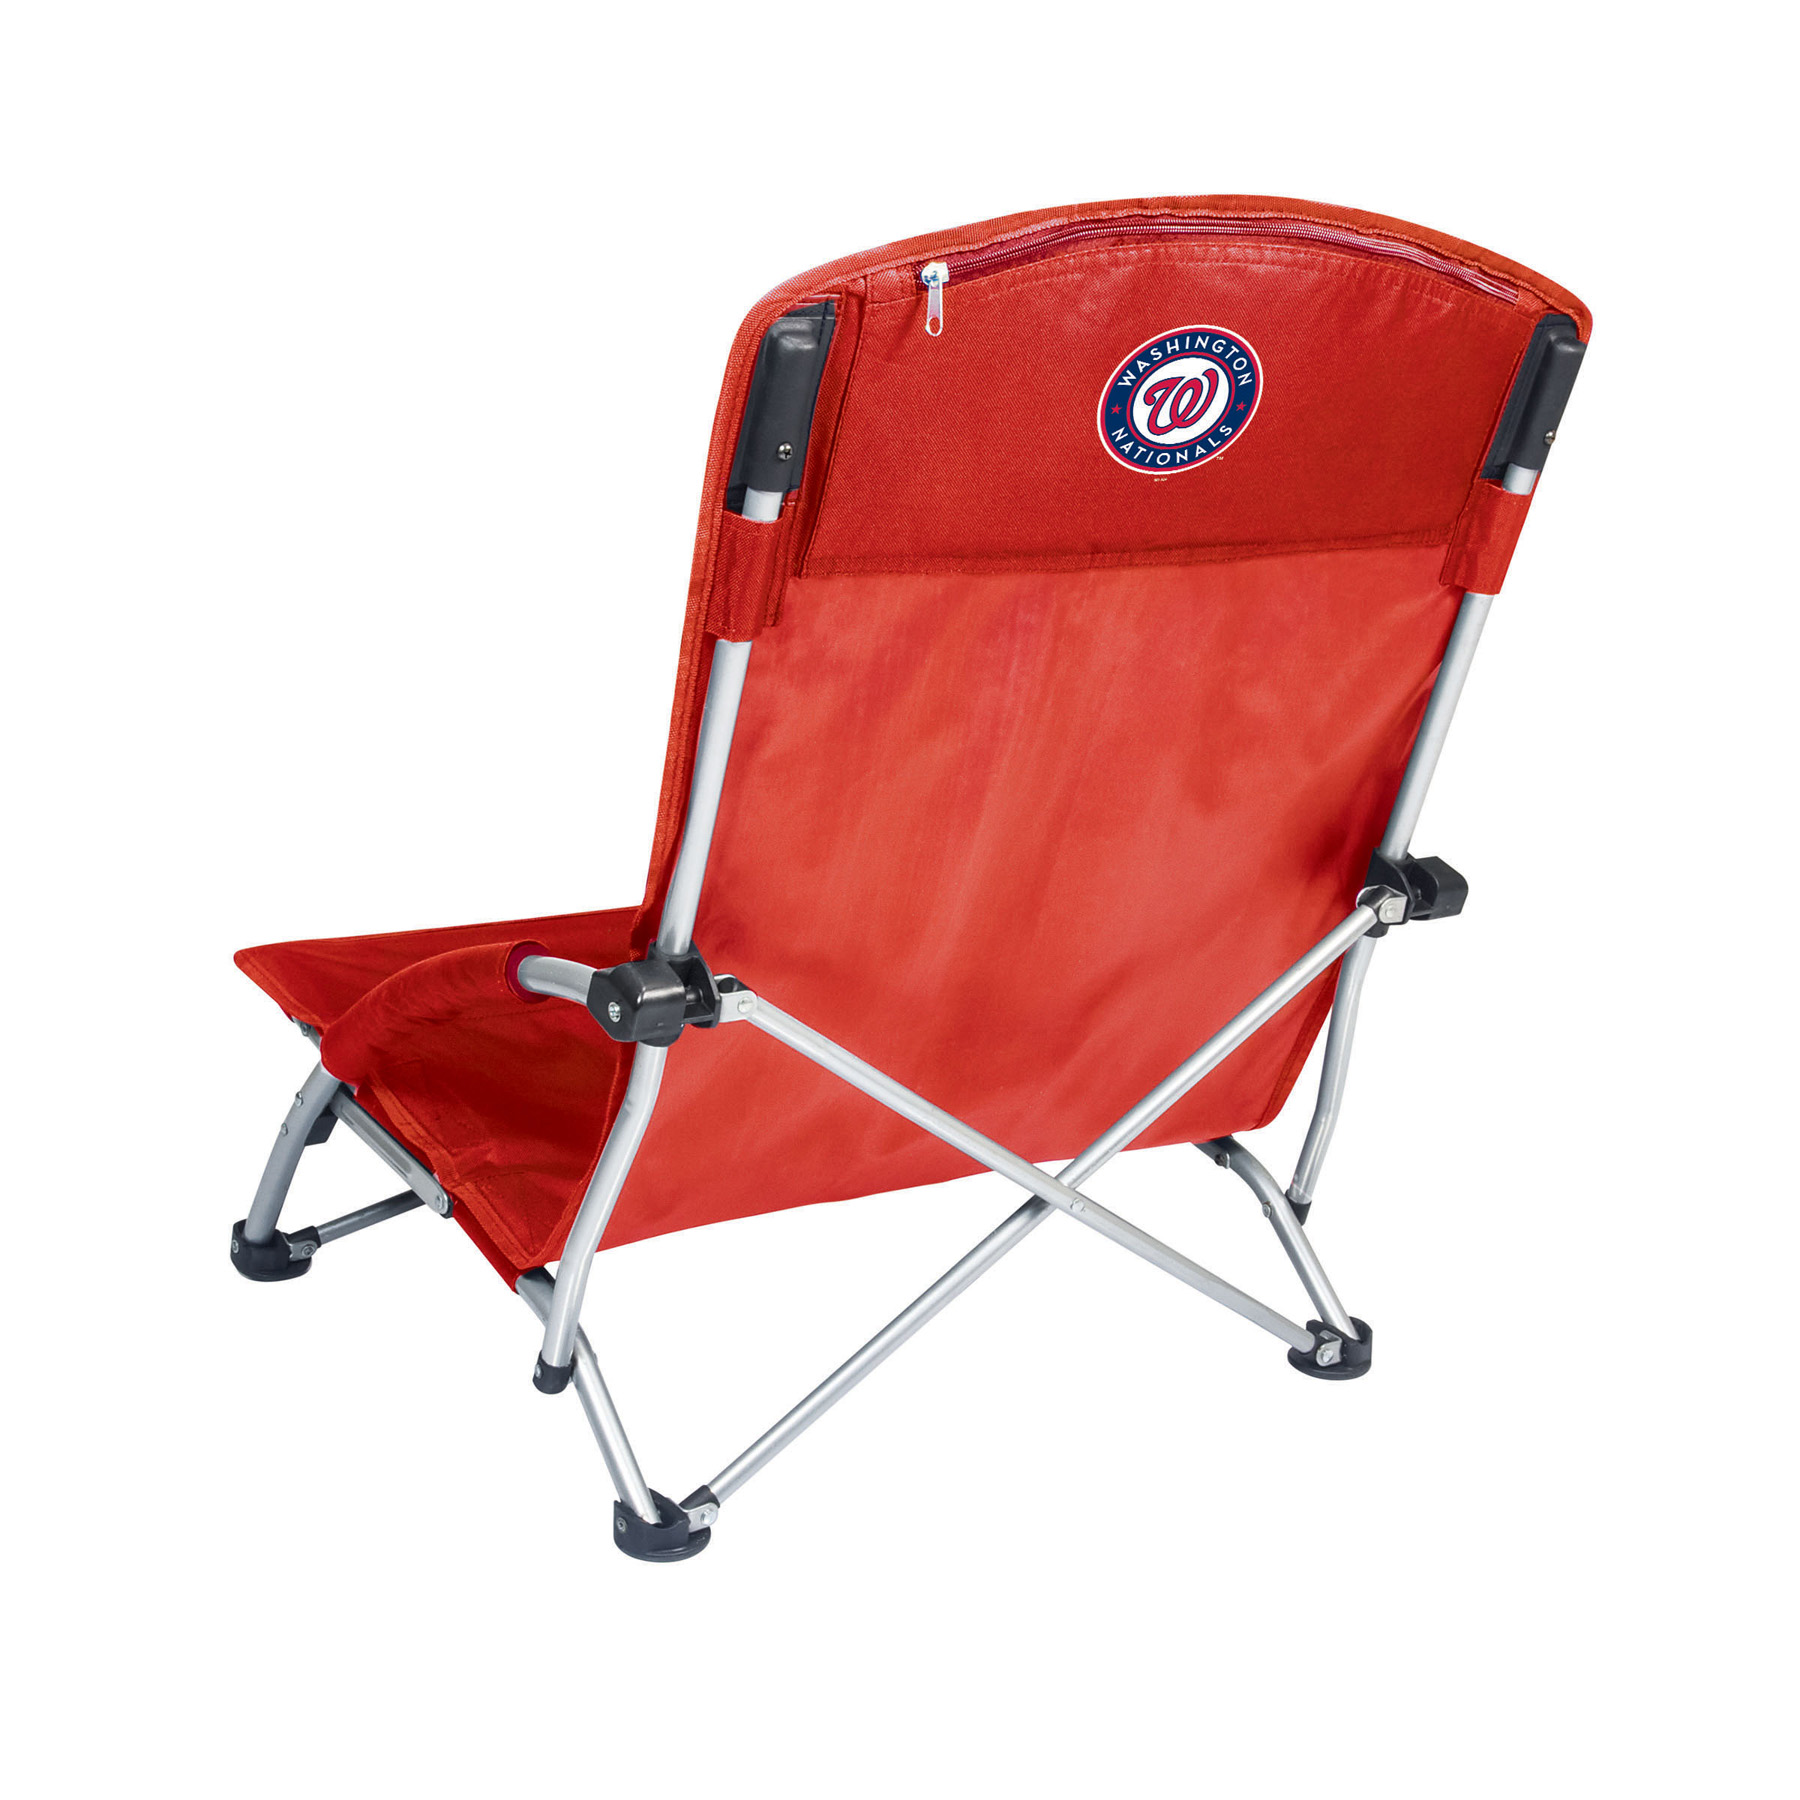 Picnic Time Tranquility Chair - MLB - Red